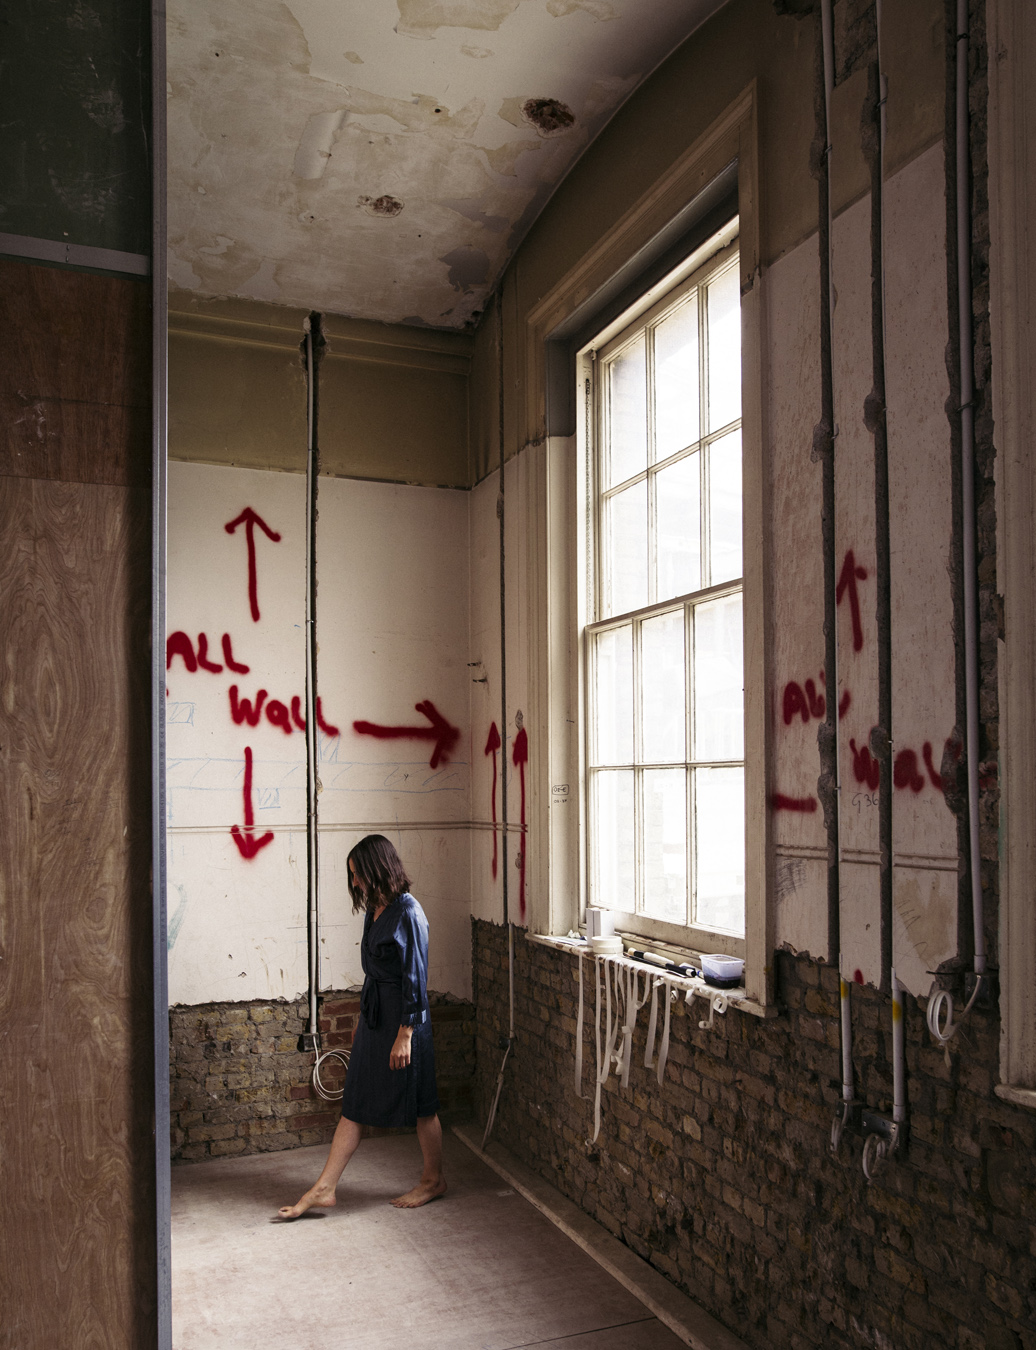 Woman walking barefoot inside room with partially exposed brick walls and spray-painted arrows